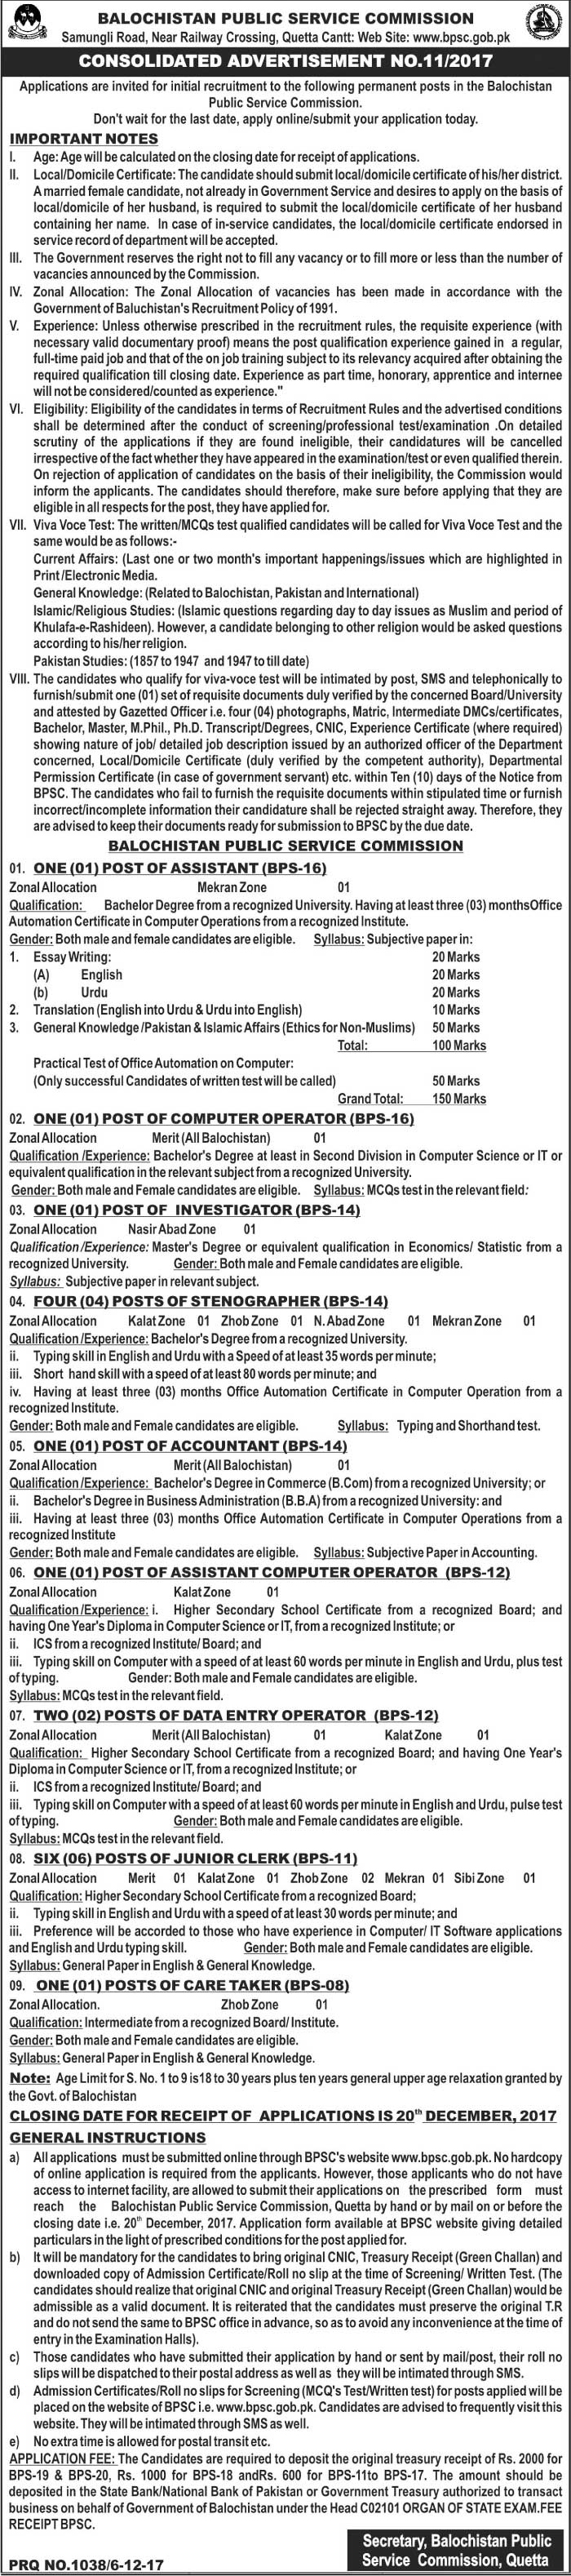 BPSC (Balochistan Public Service Commission) Jobs Jang Newspaper 07 December 2017